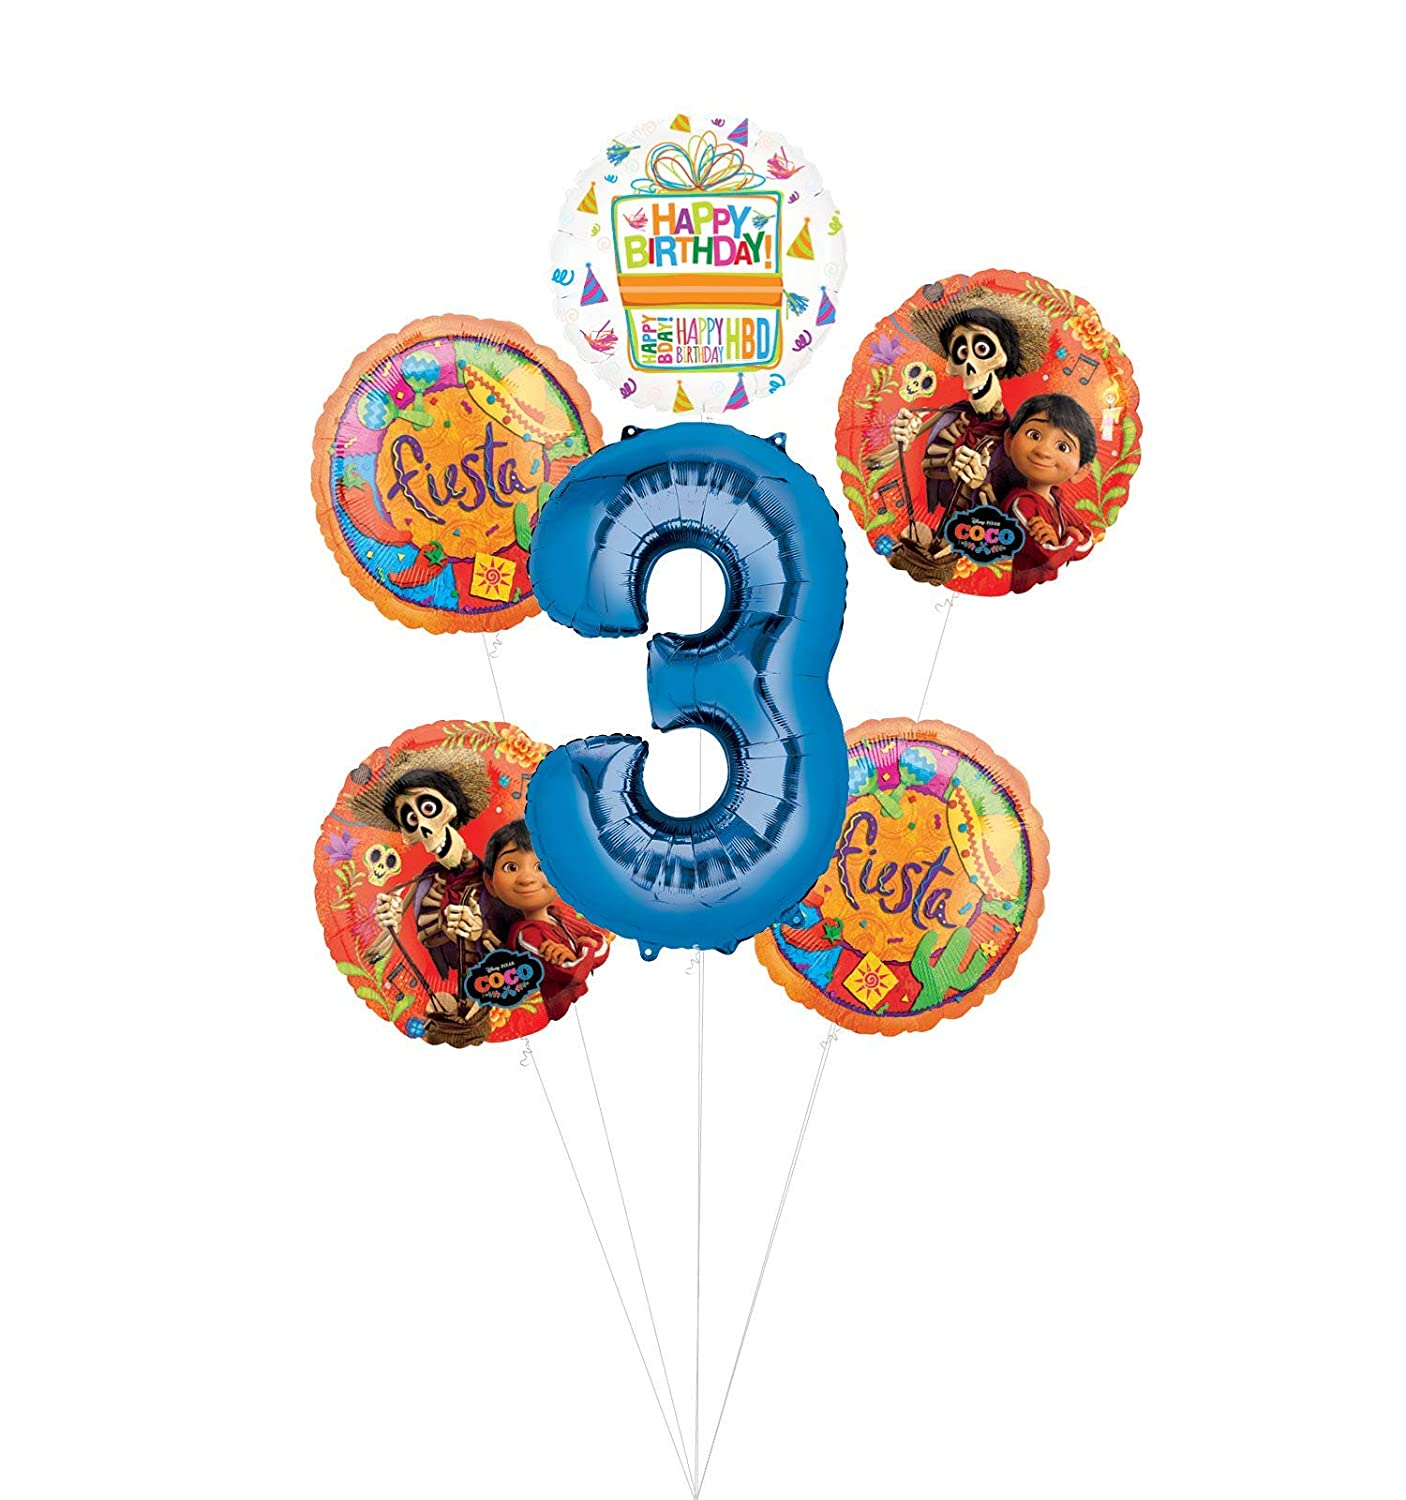 Coco Party Supplies 3rd Birthday Fiesta Balloon Bouquet Decorations Blue Number 3